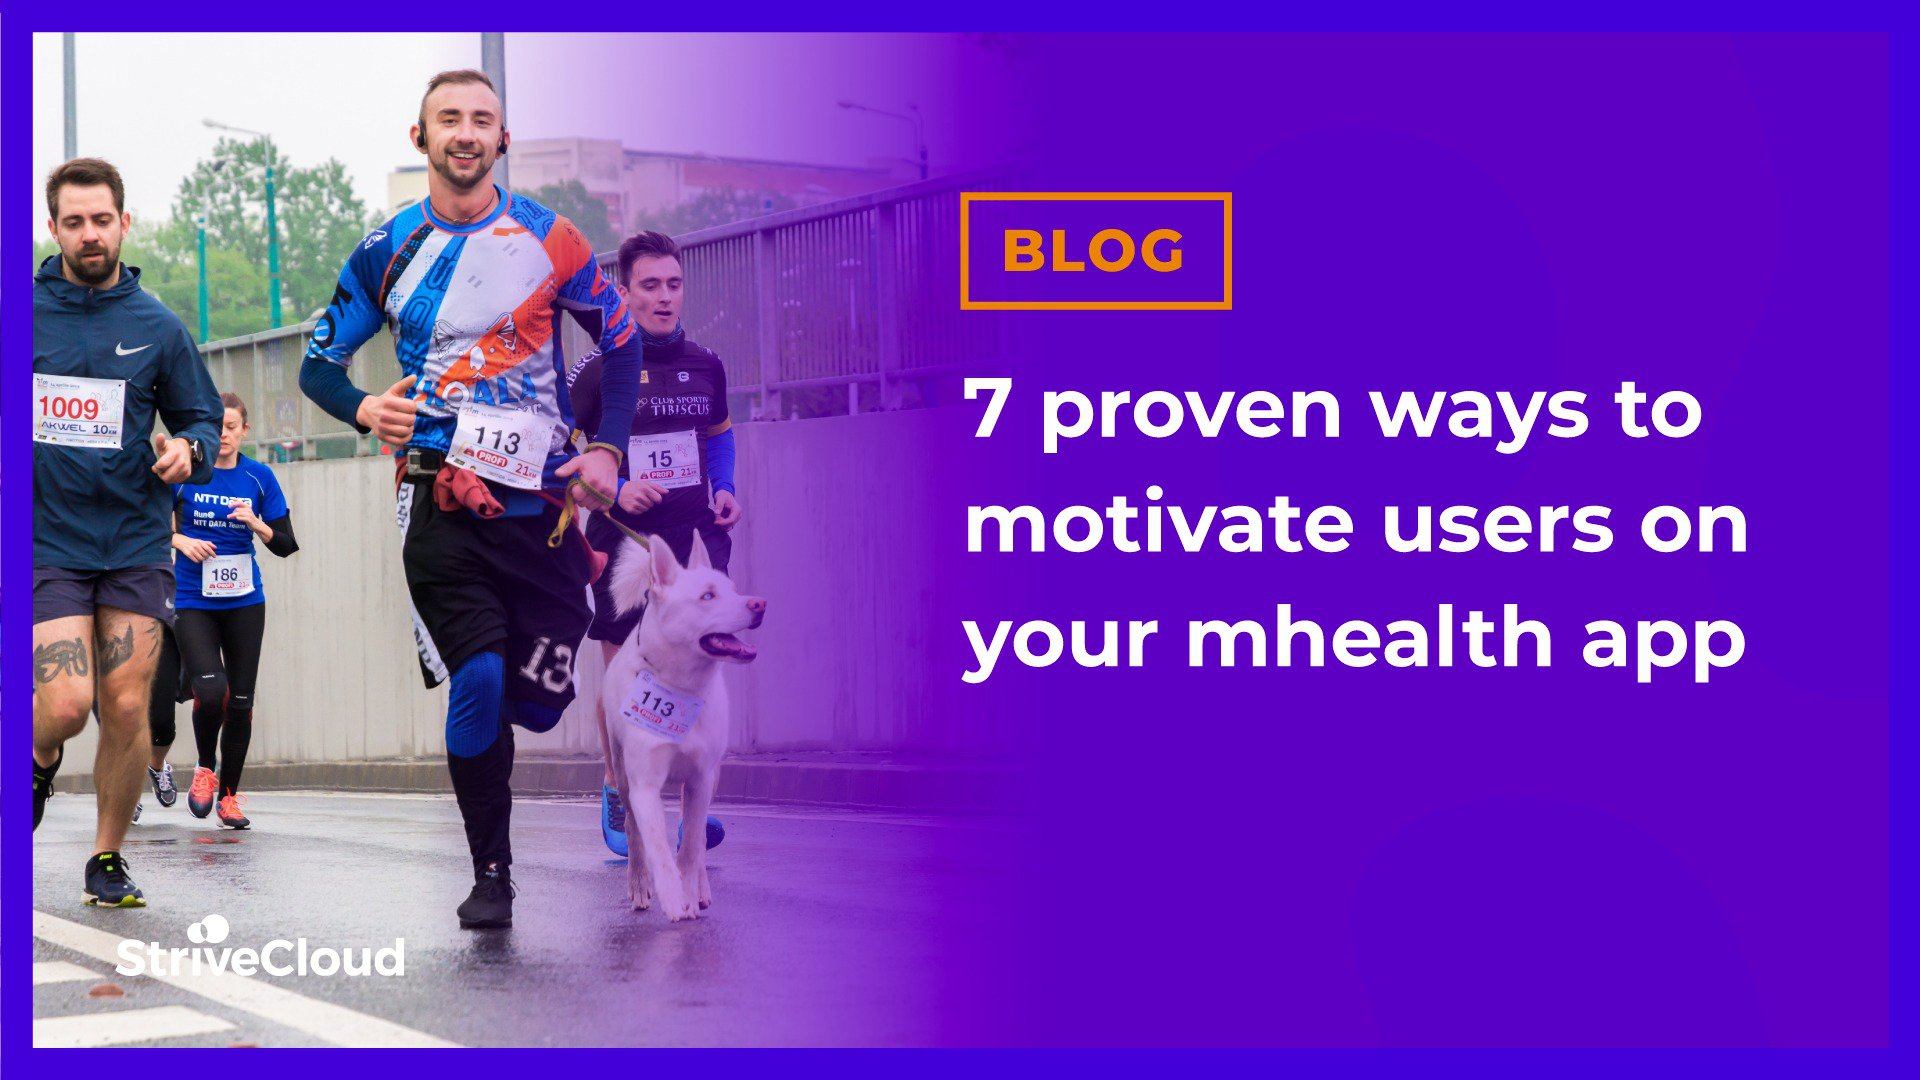 7 proven ways to motivate users on your mhealth app